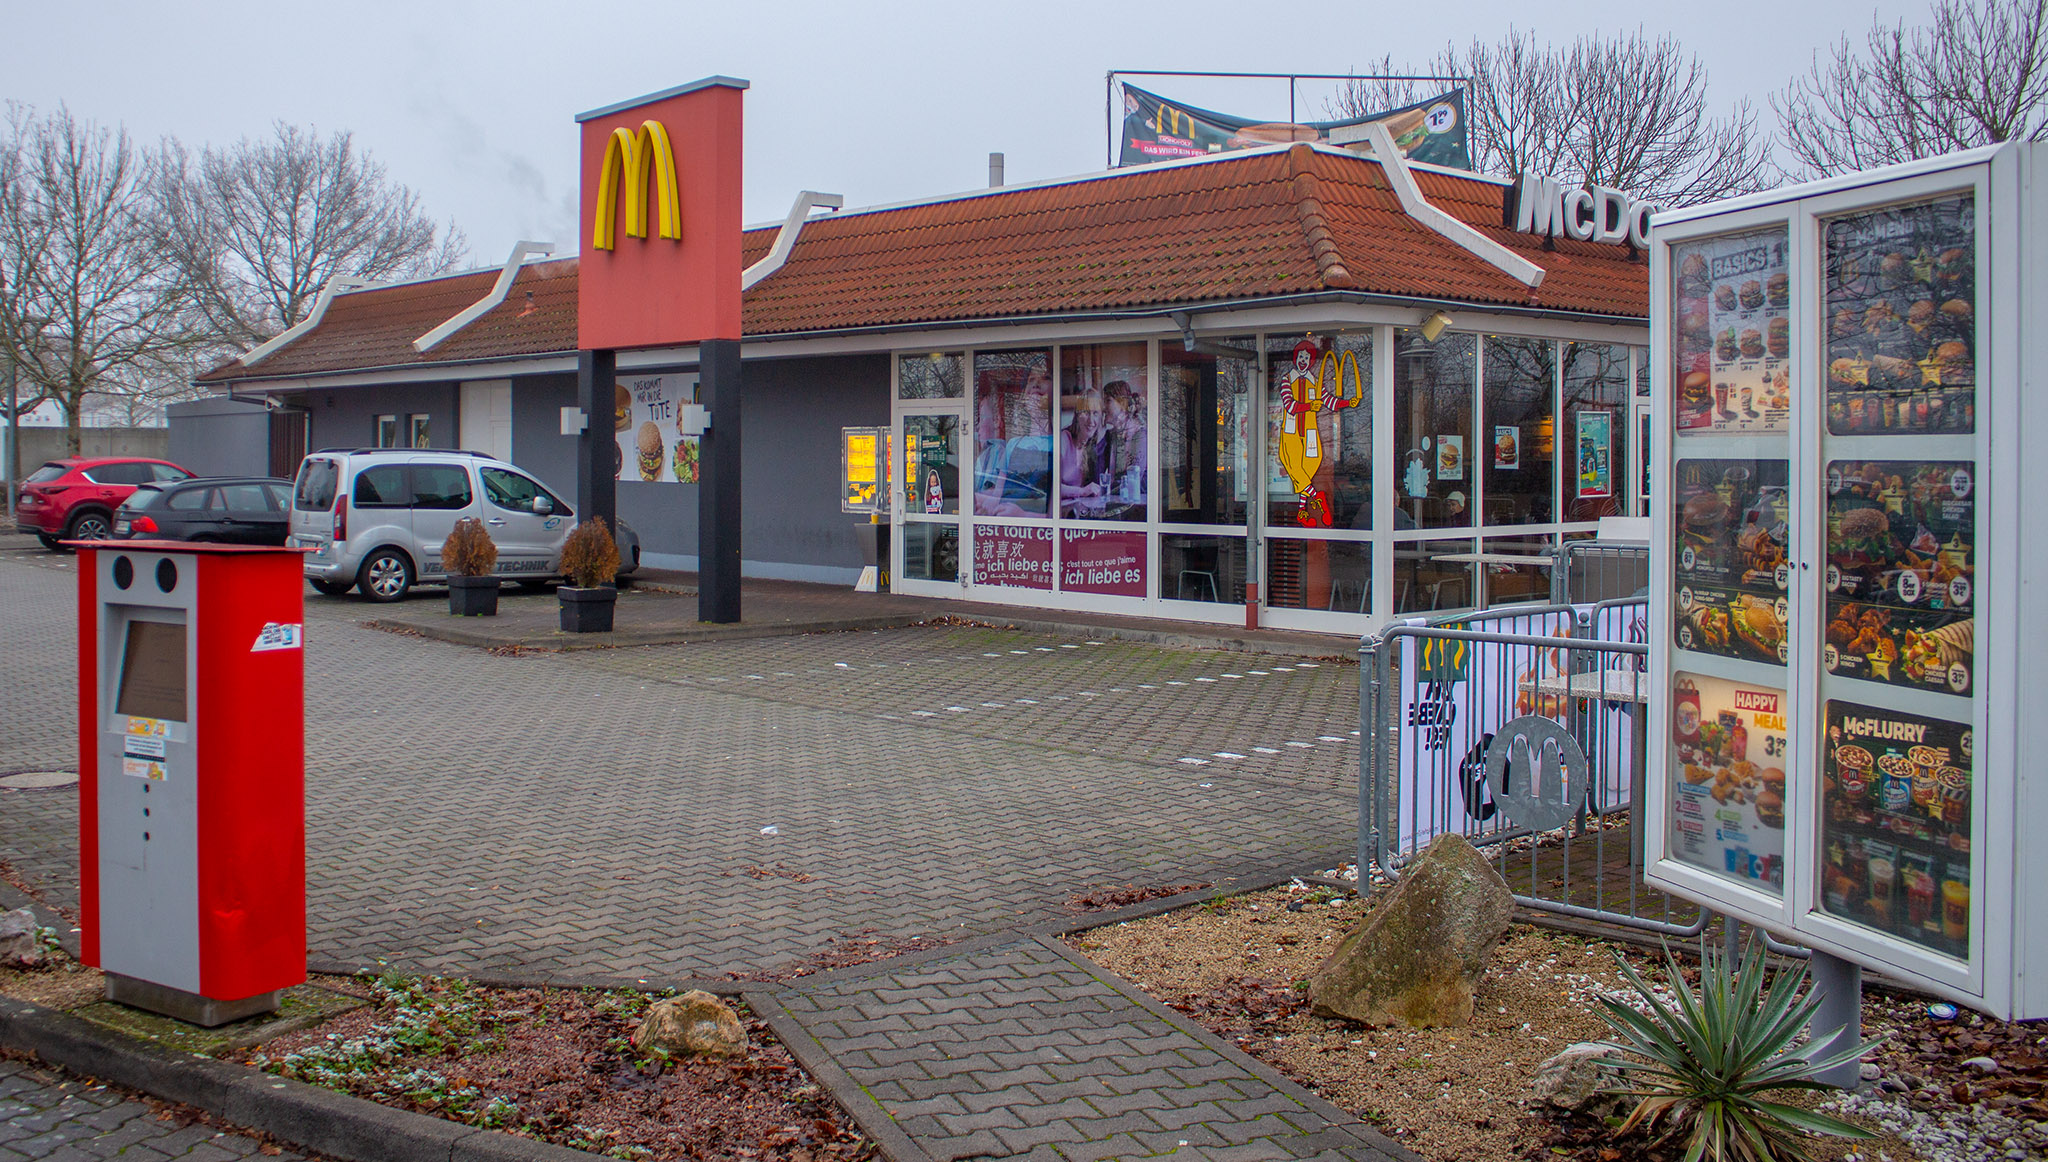 Das McDonald's-Restaurant in Riedstadt